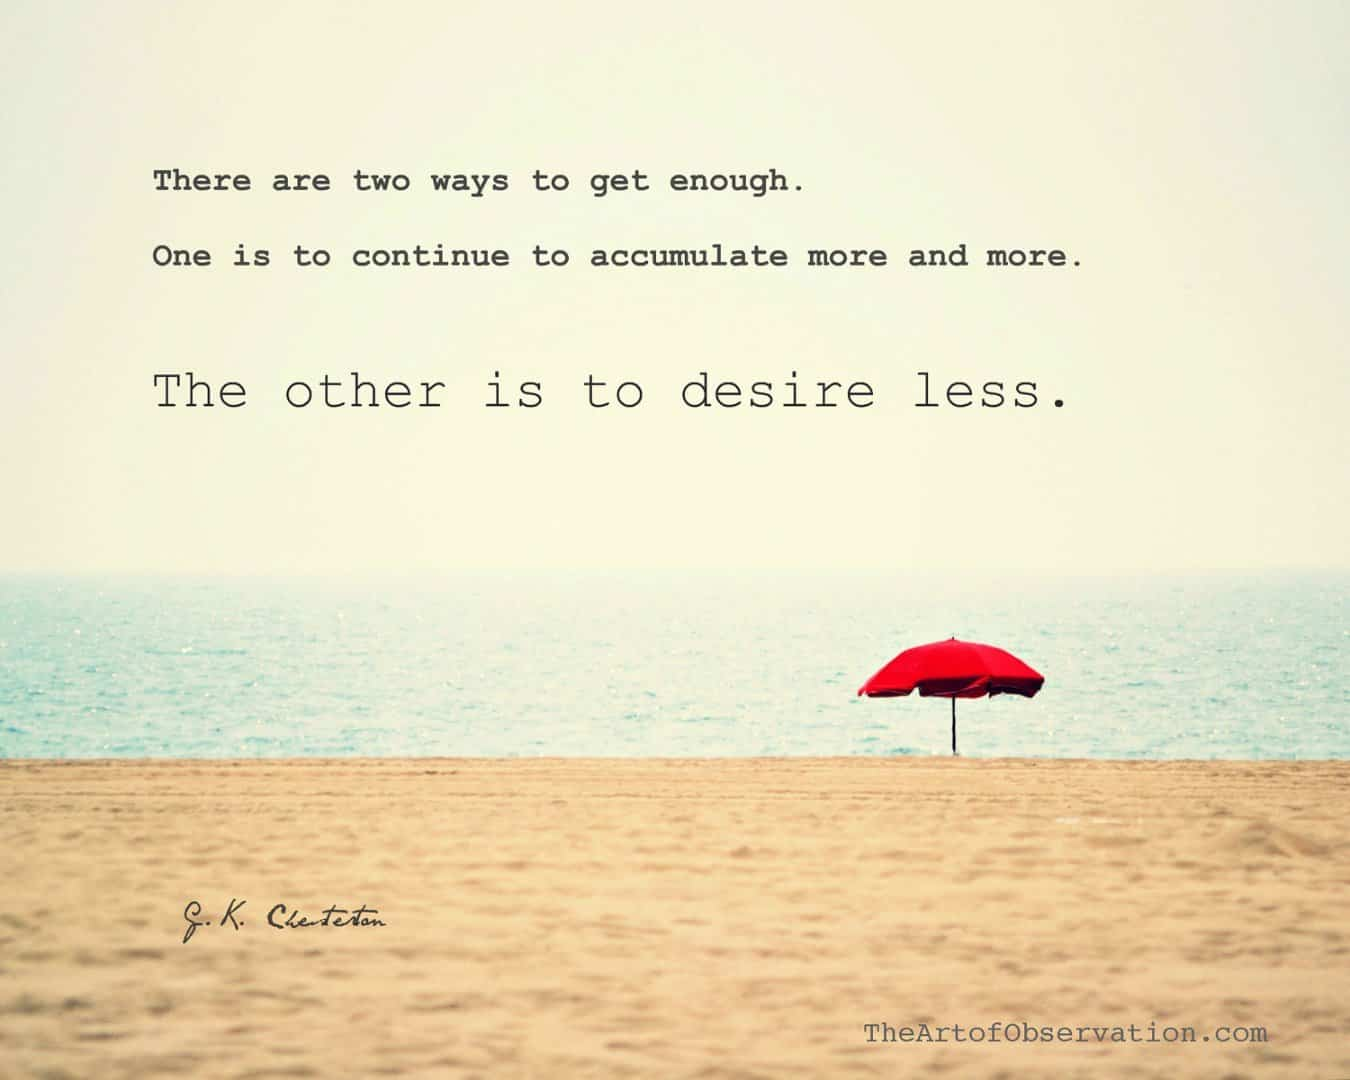 Pinterest Quotes 15 Inspirational Quotes From Pinterest That Shouldn't Be Taken  Pinterest Quotes